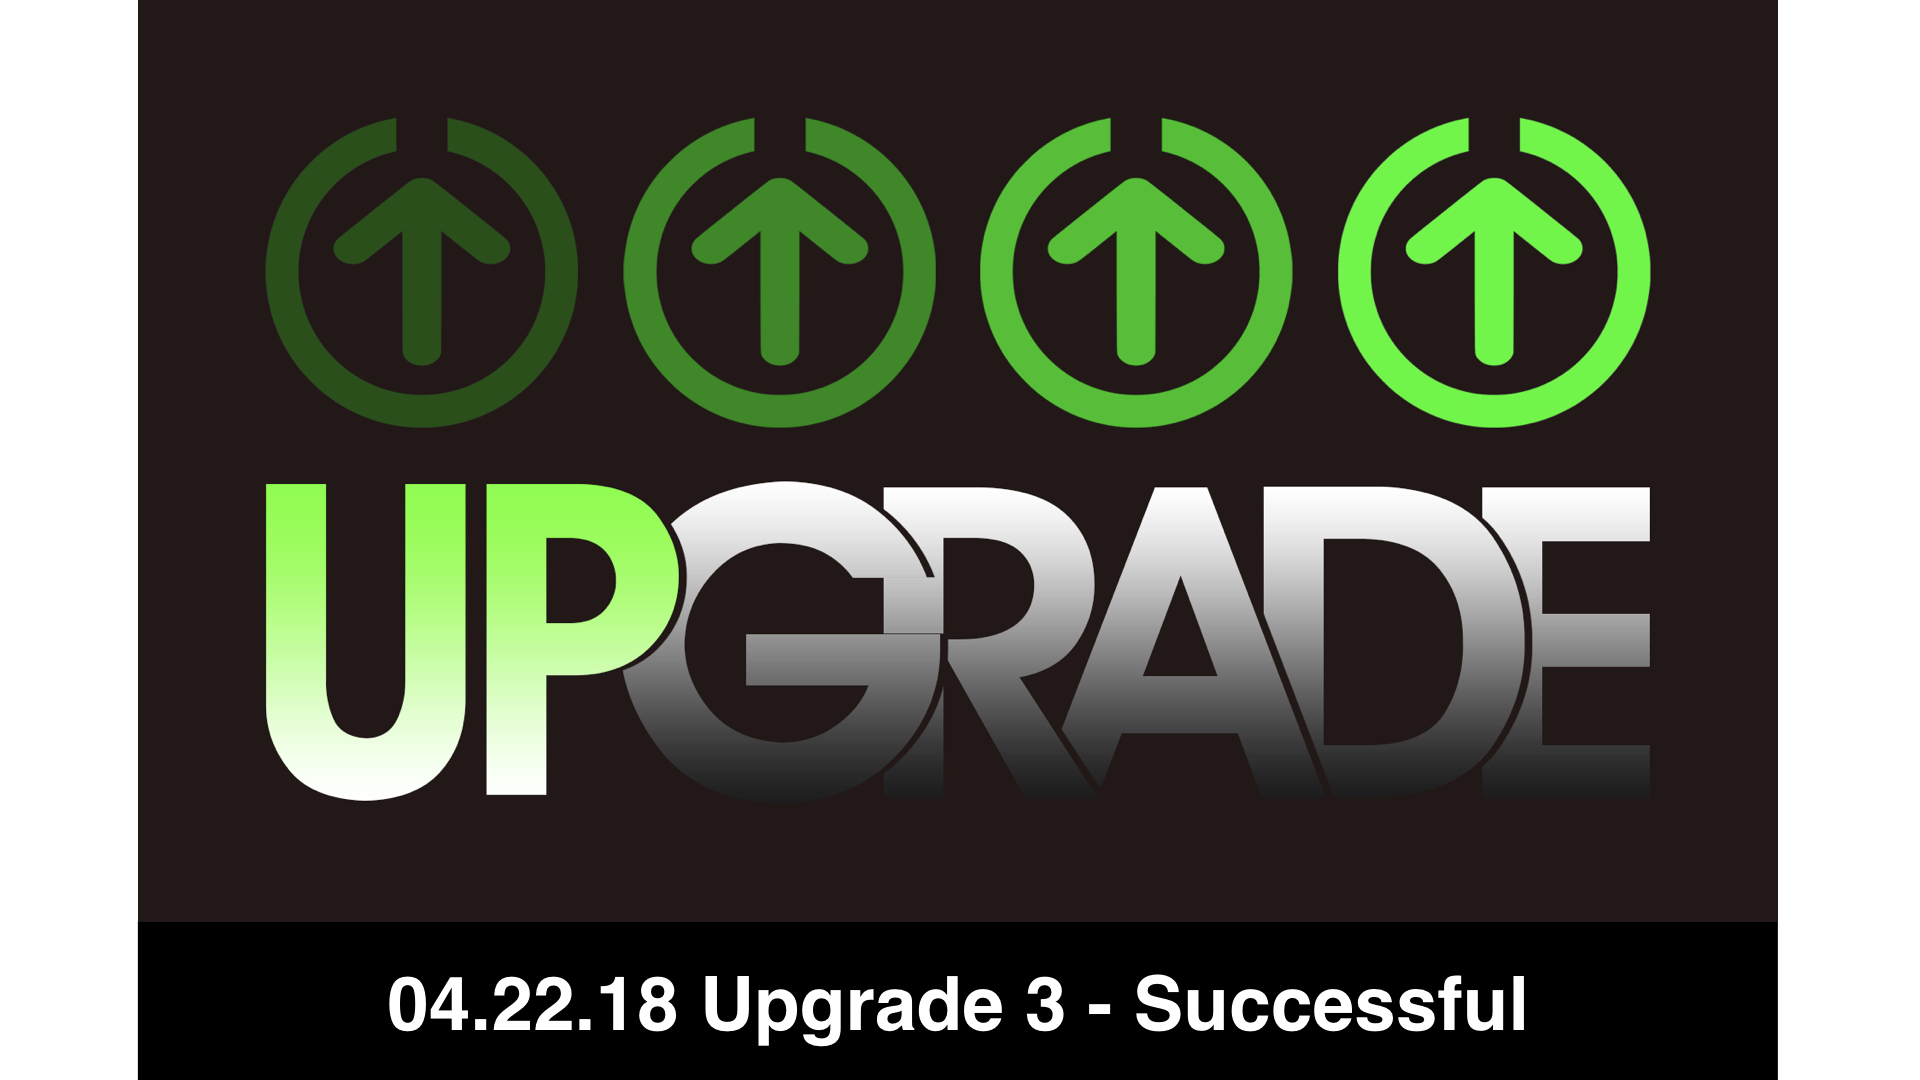 04.22.18 Upgrade 3 - Successful